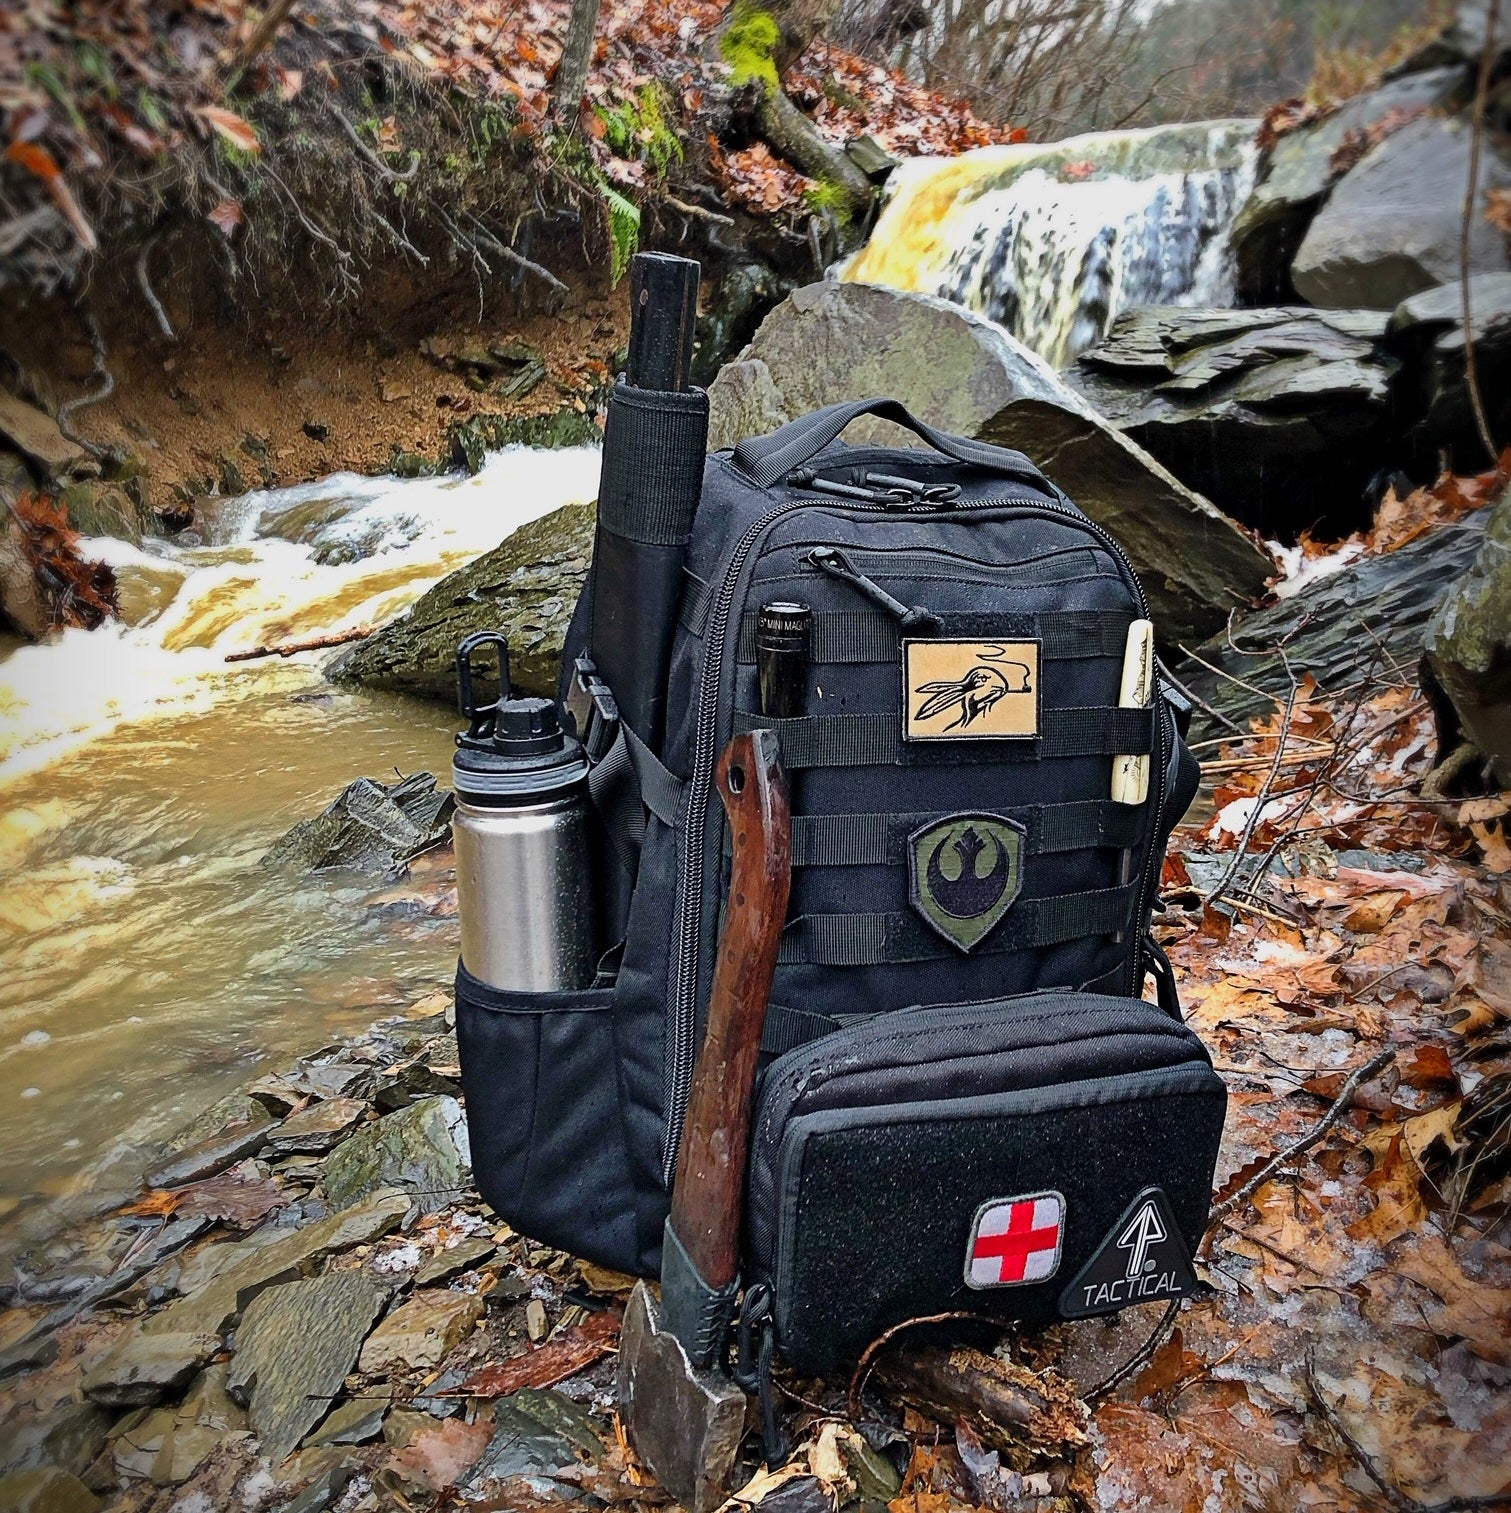 14er Tactical Backpack with molle accessories in the woods